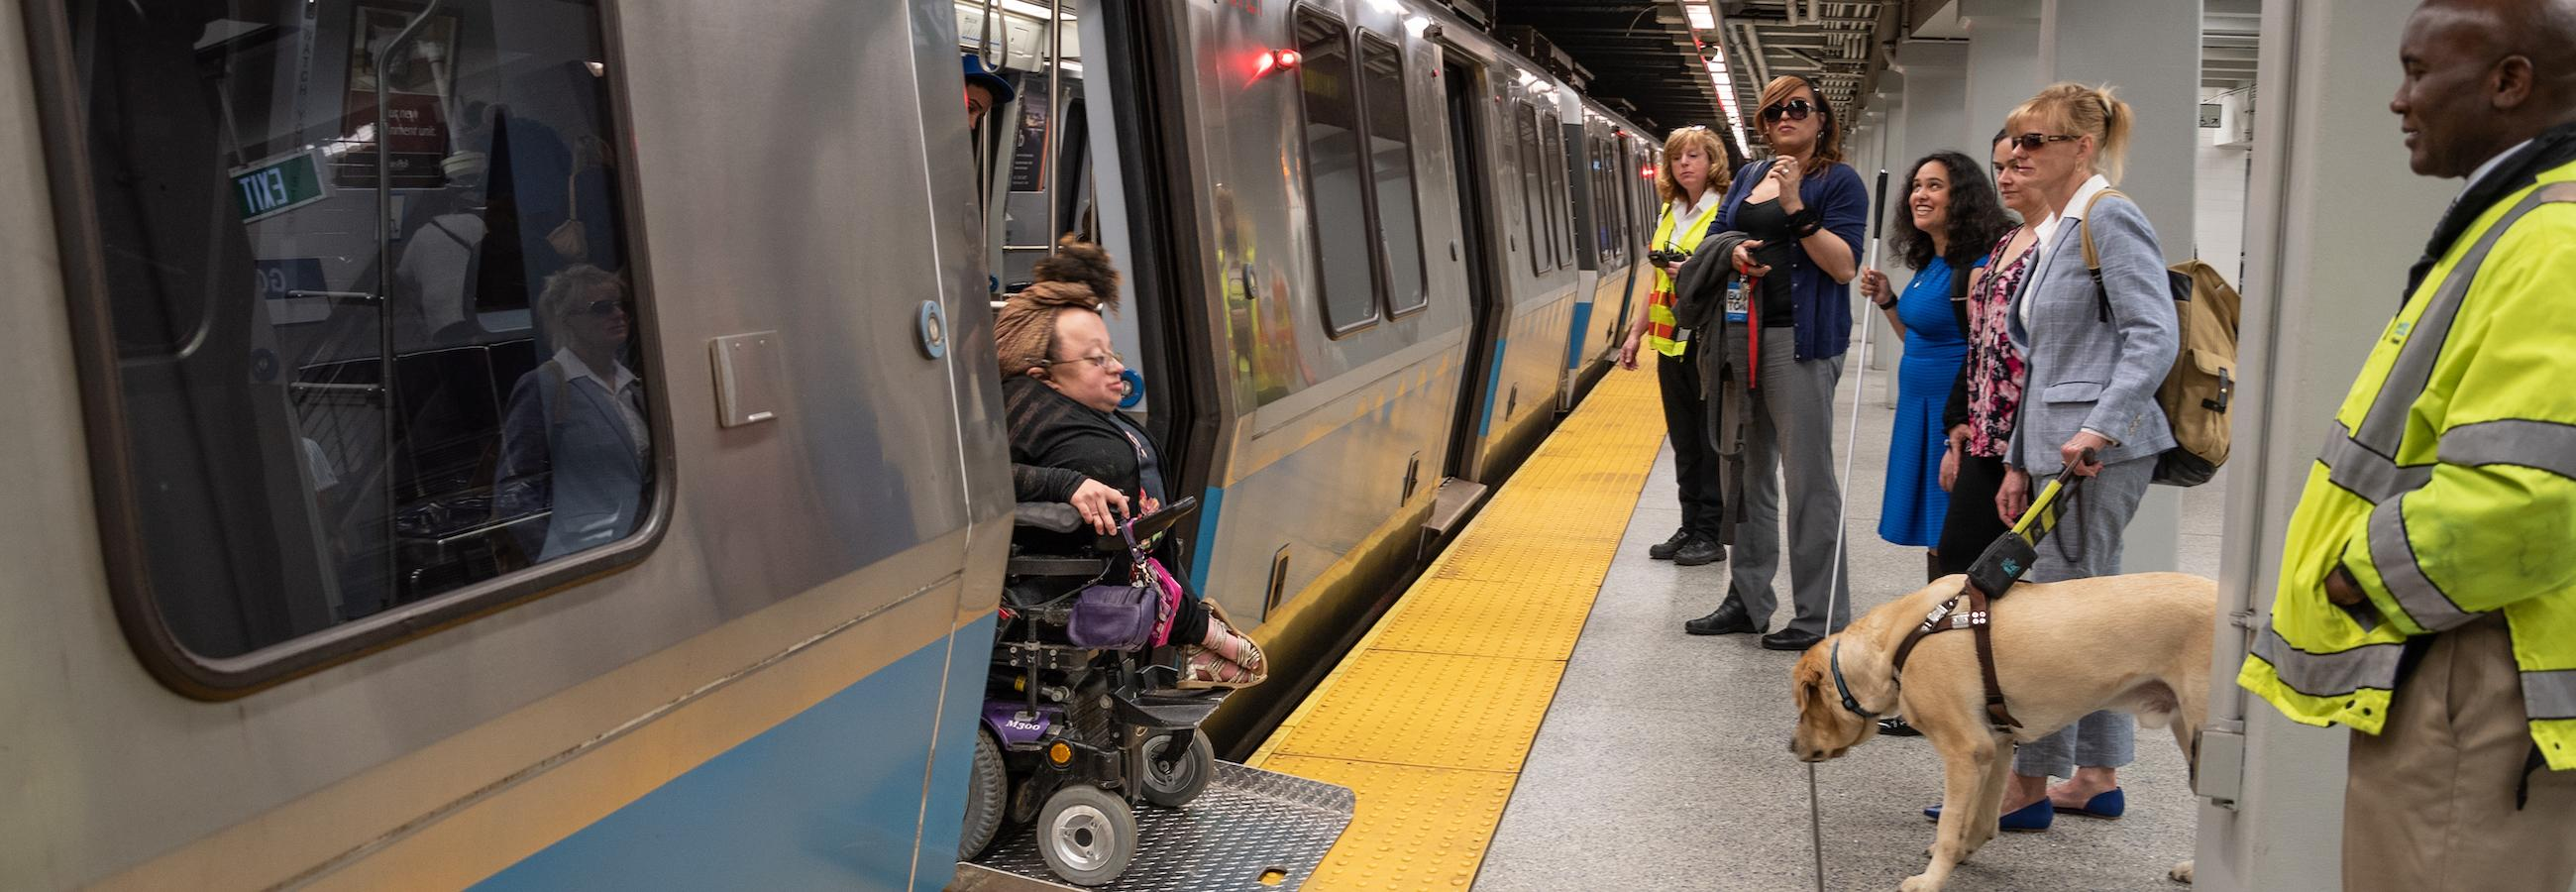 Rider in Wheeled Mobility Device Exiting Blue Line Train with Bridgeplate